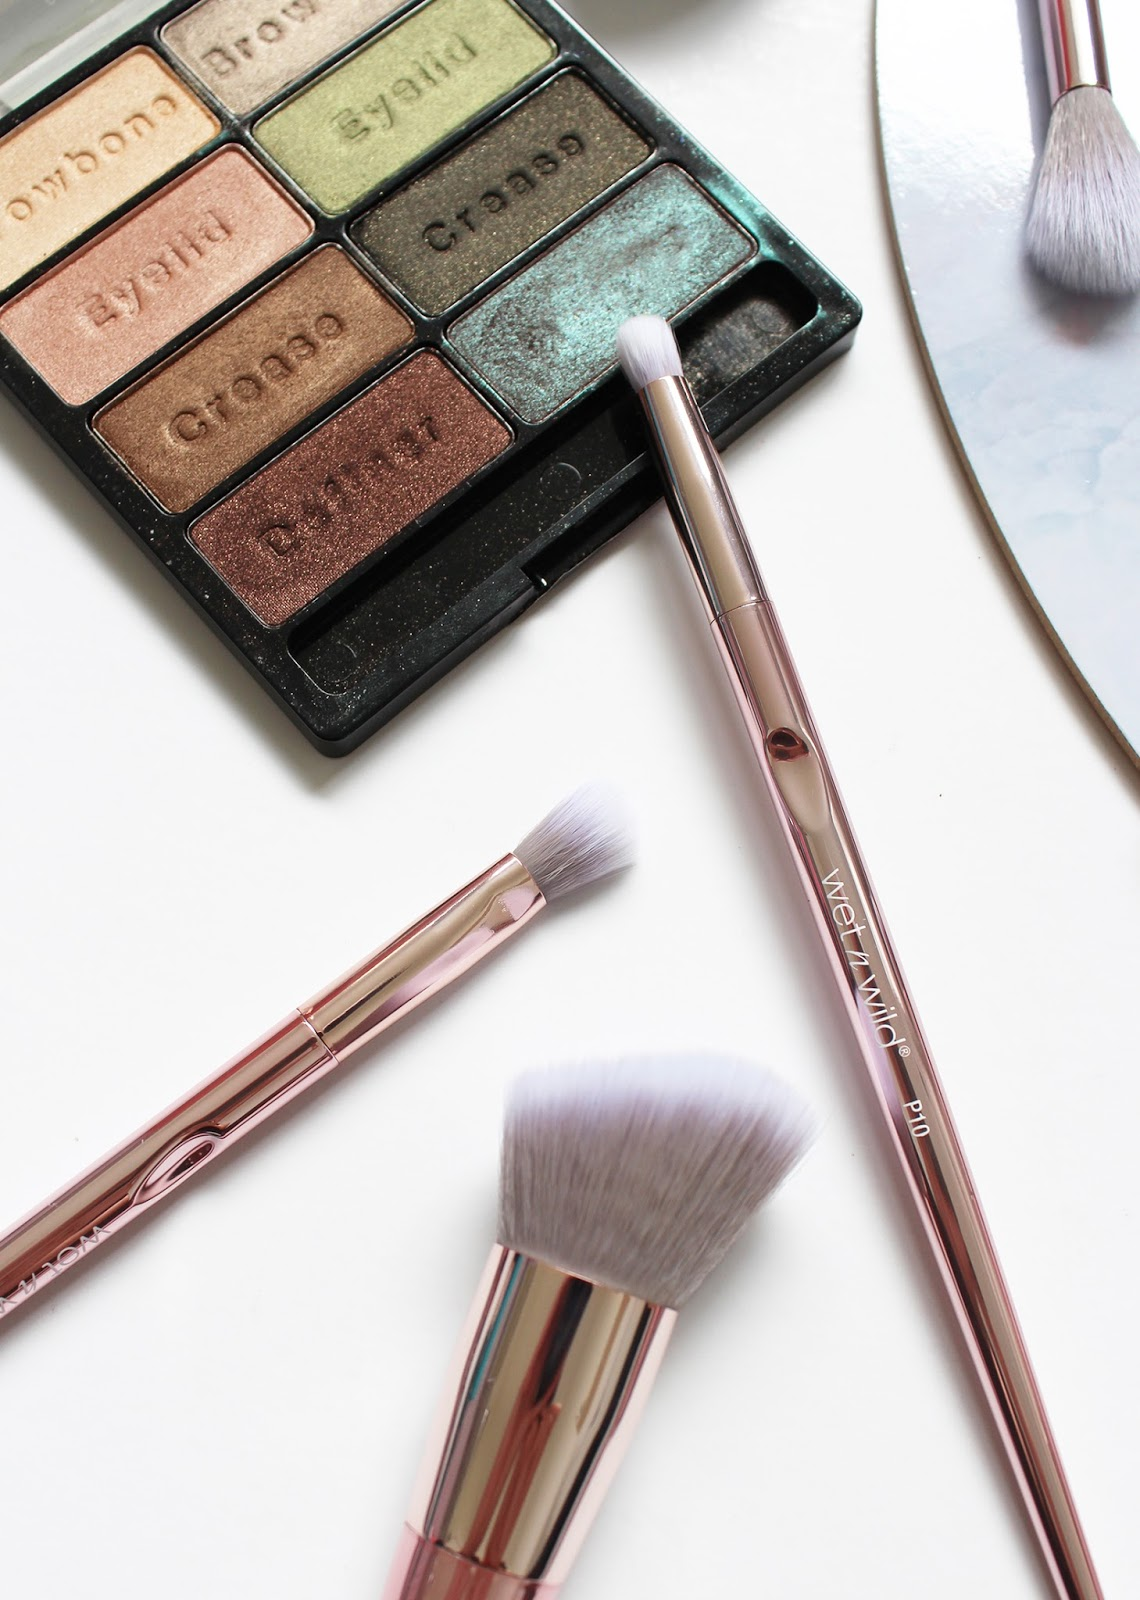 WET N WILD | Proline Makeup Brushes - CassandraMyee